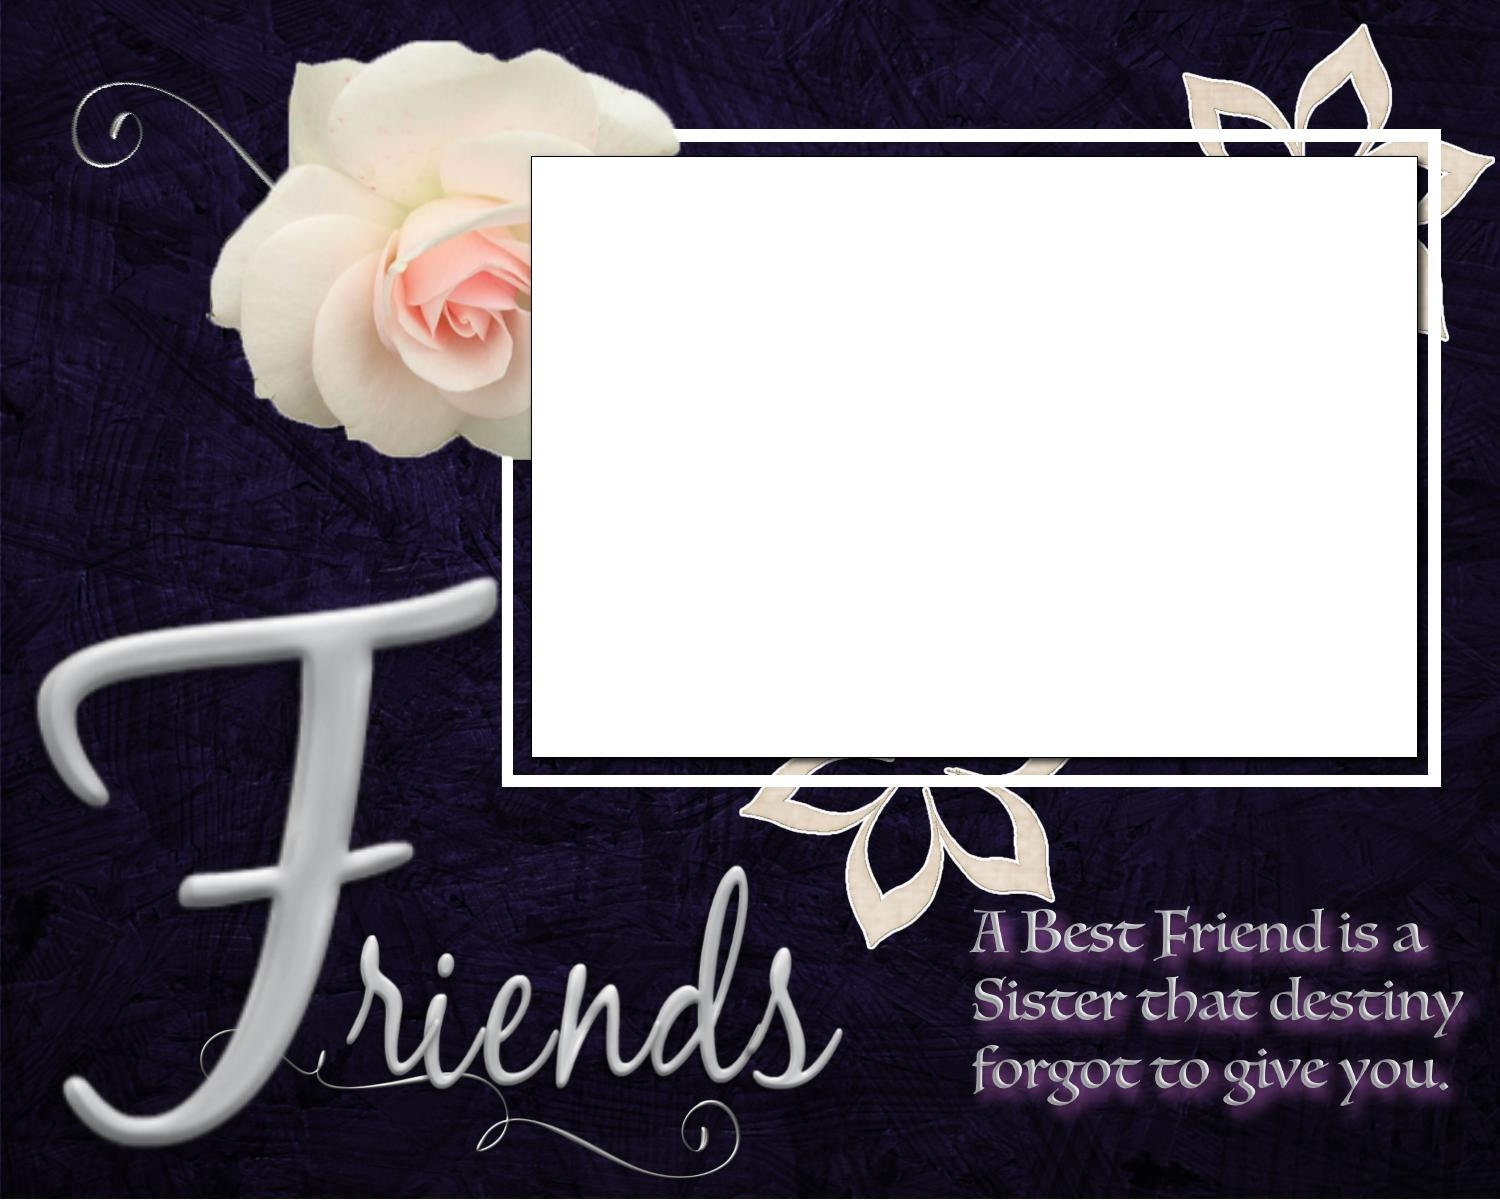 Friendship Picture Frames With Quotes | Imaganationface.org